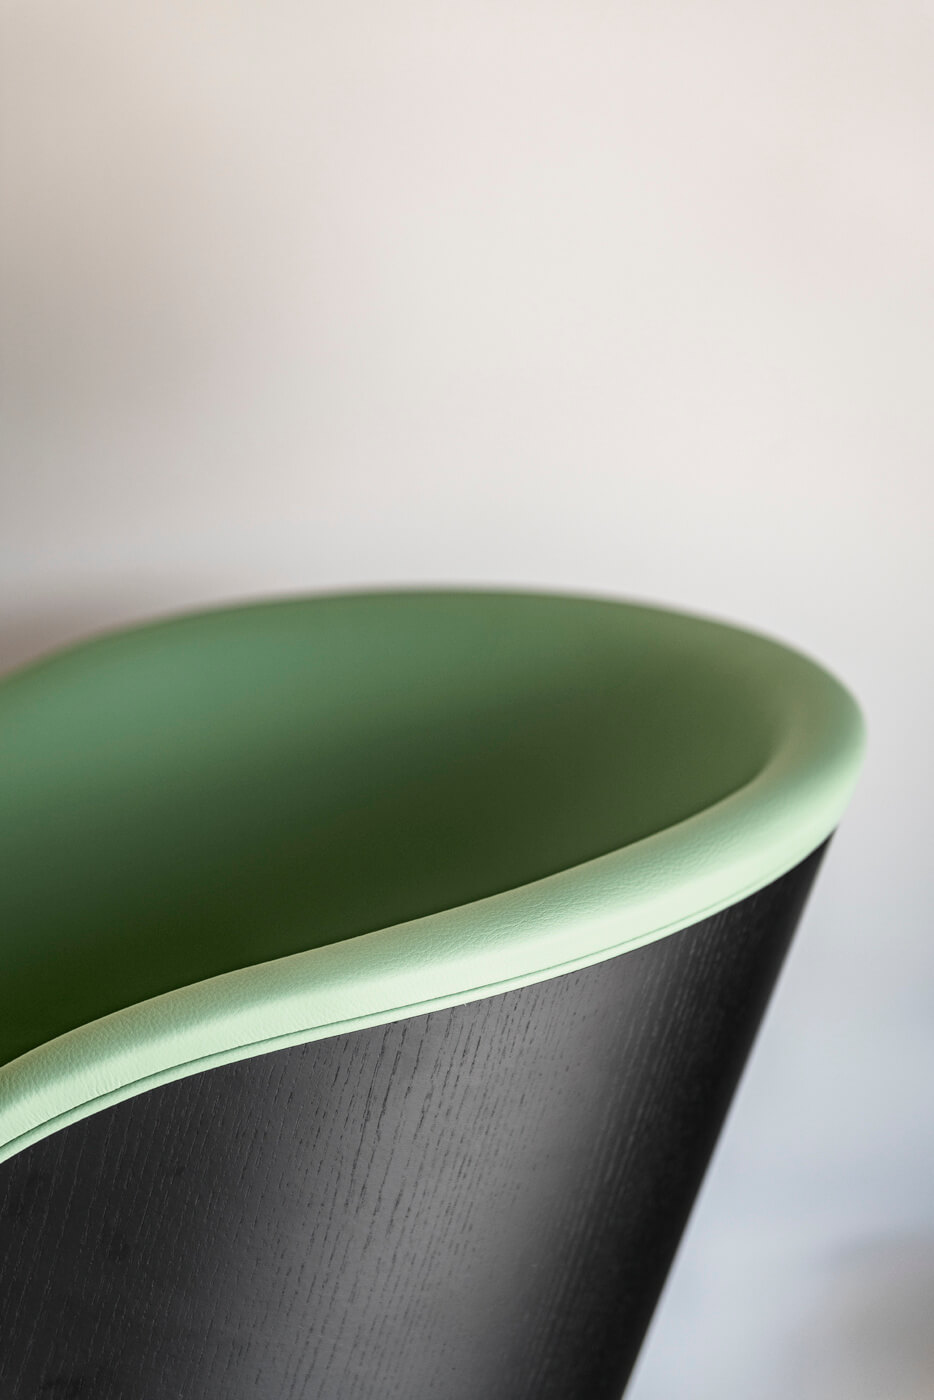 Danny armchair detail with black wood shell back and green leather seat